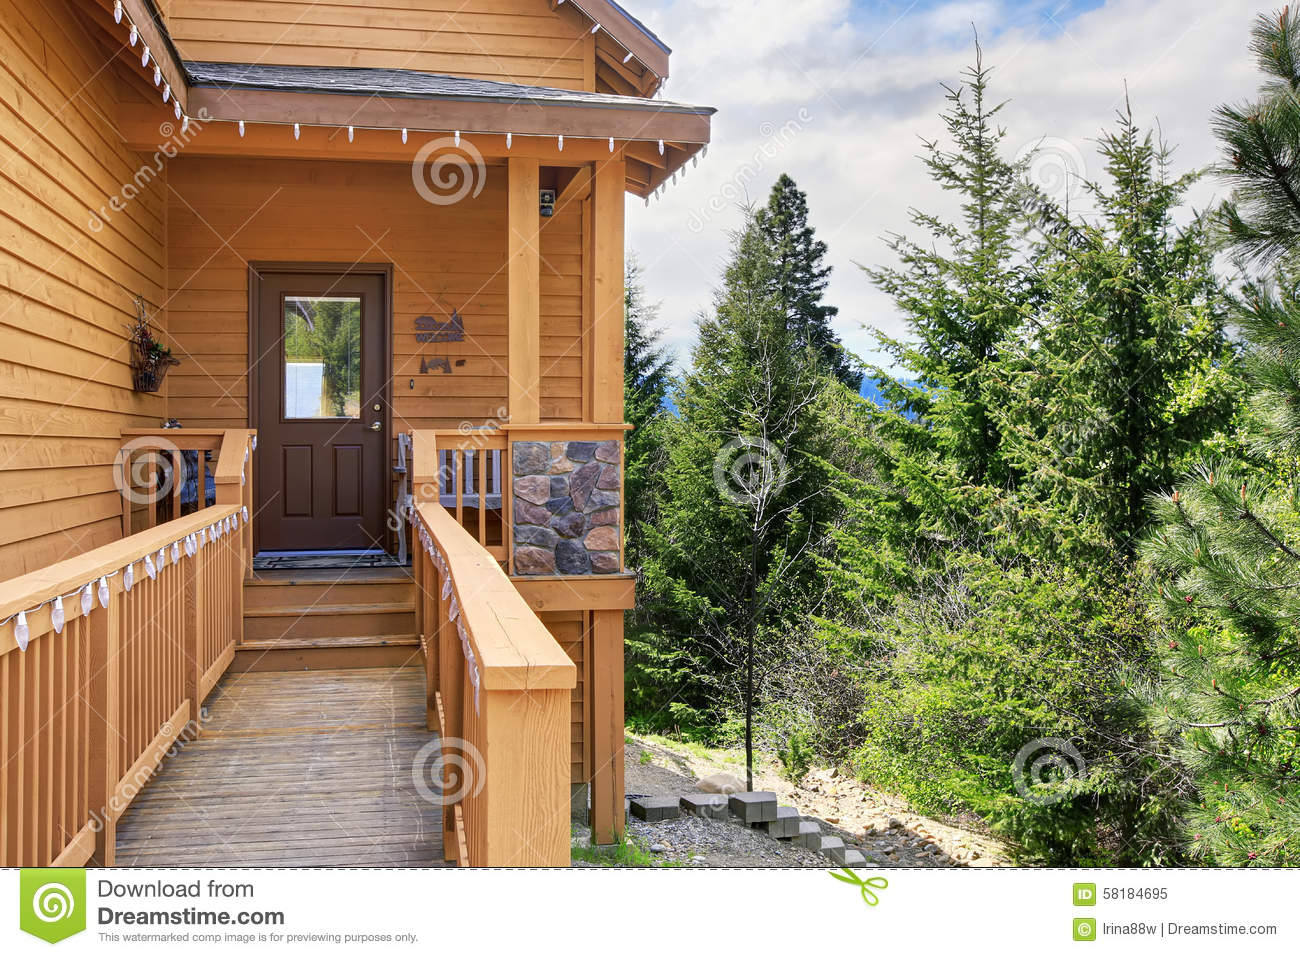 cabin style home entrance with long walkway and railings stock cabin door entrance front greenery home long lots railings style